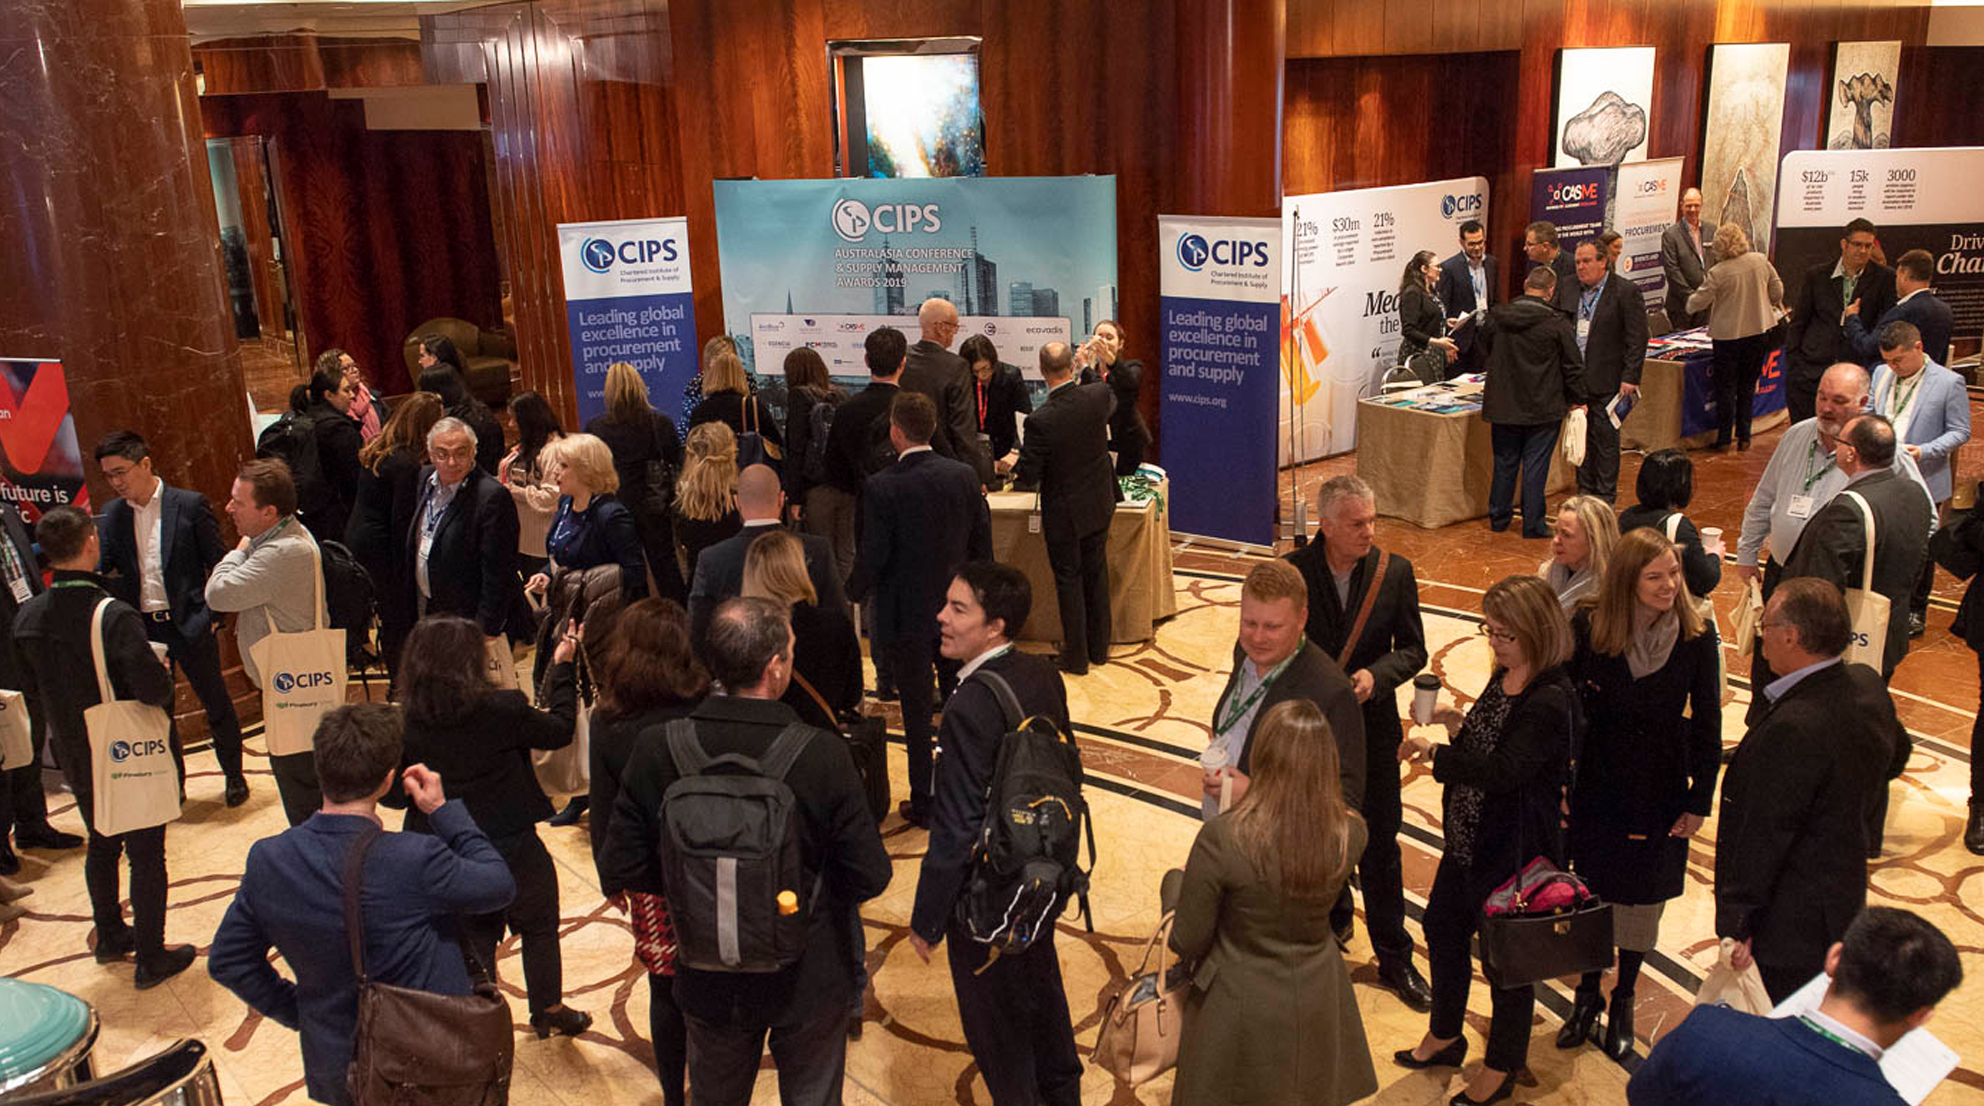 CIPS Conference networking